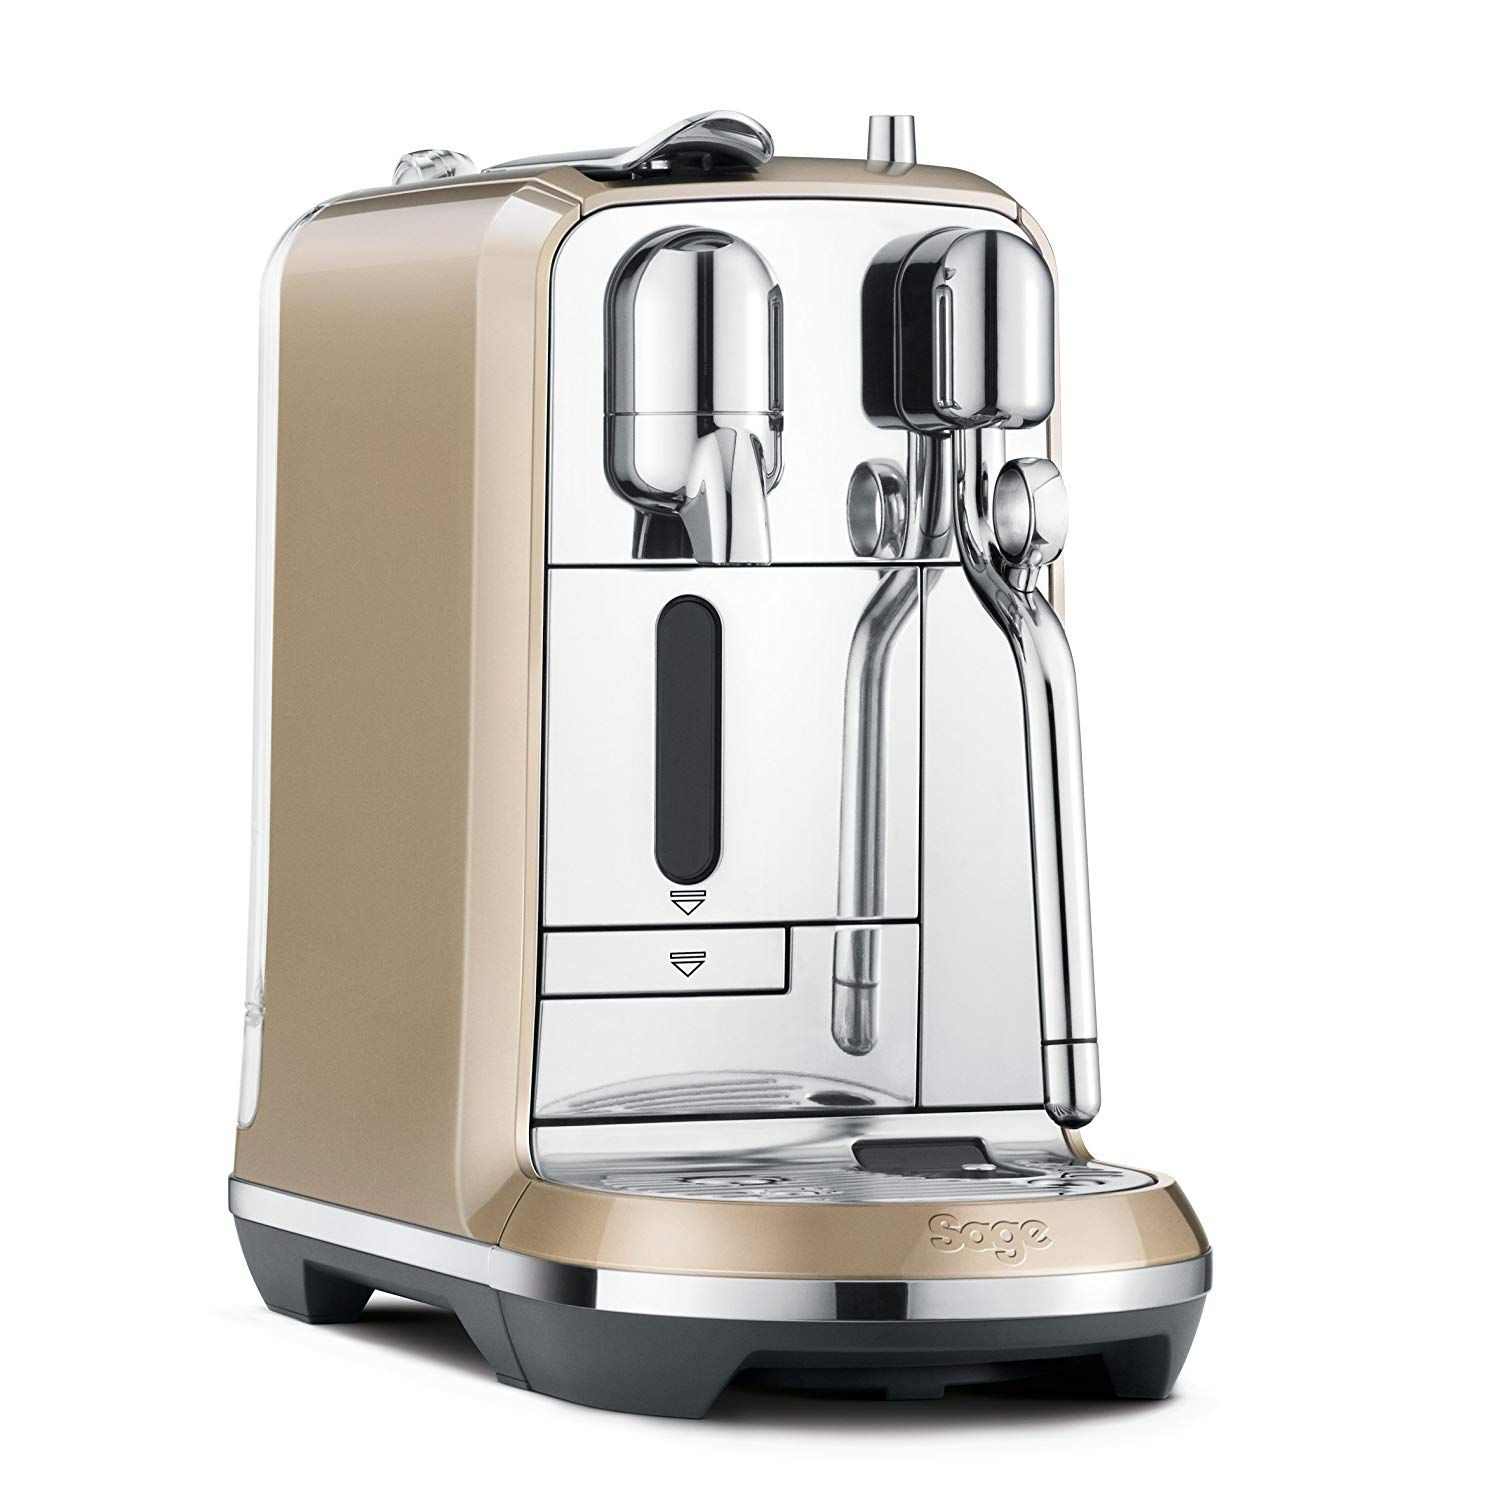 Nespresso Creatista Coffee Machine, Champagne by Sage